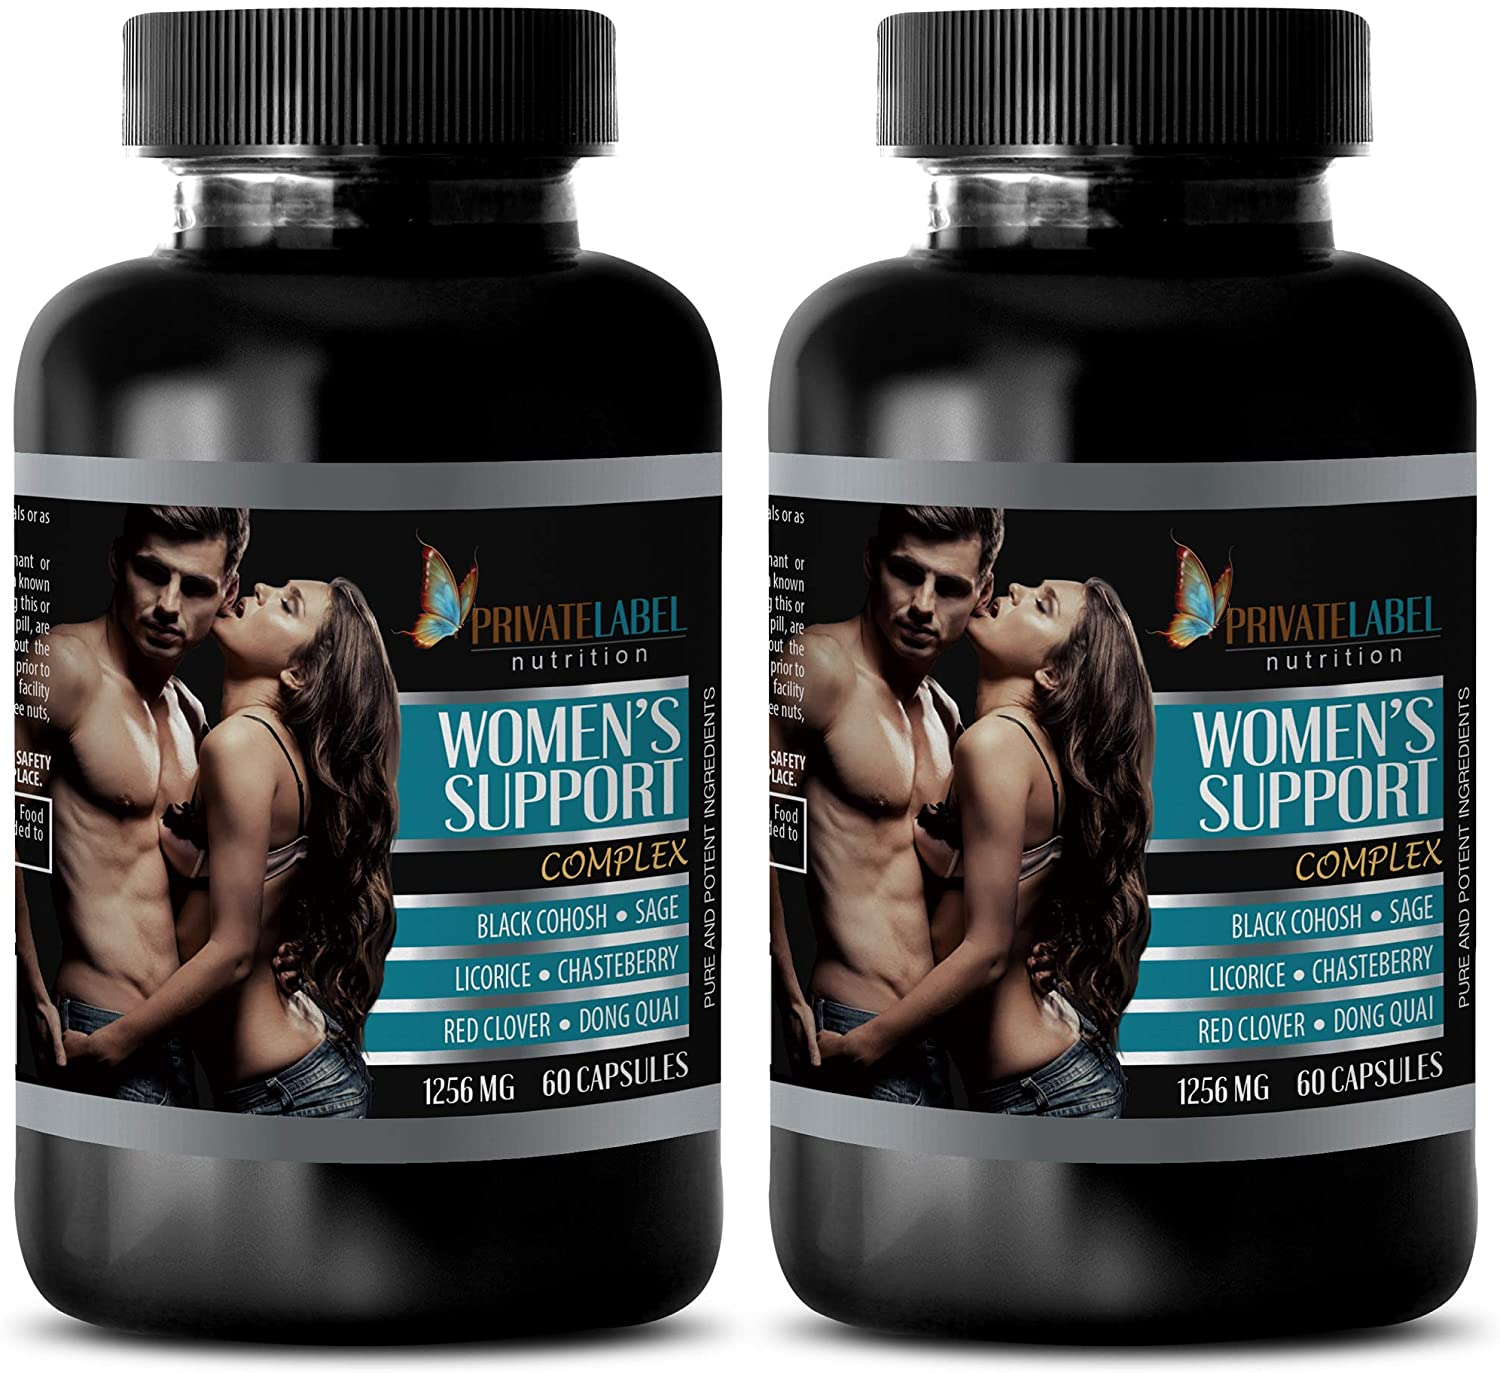 Blood Pressure Diet - Women's Support Complex - Pure and Potent Ingredients - Dong quai Root Capsules - 2 Bottles (120 Capsules)